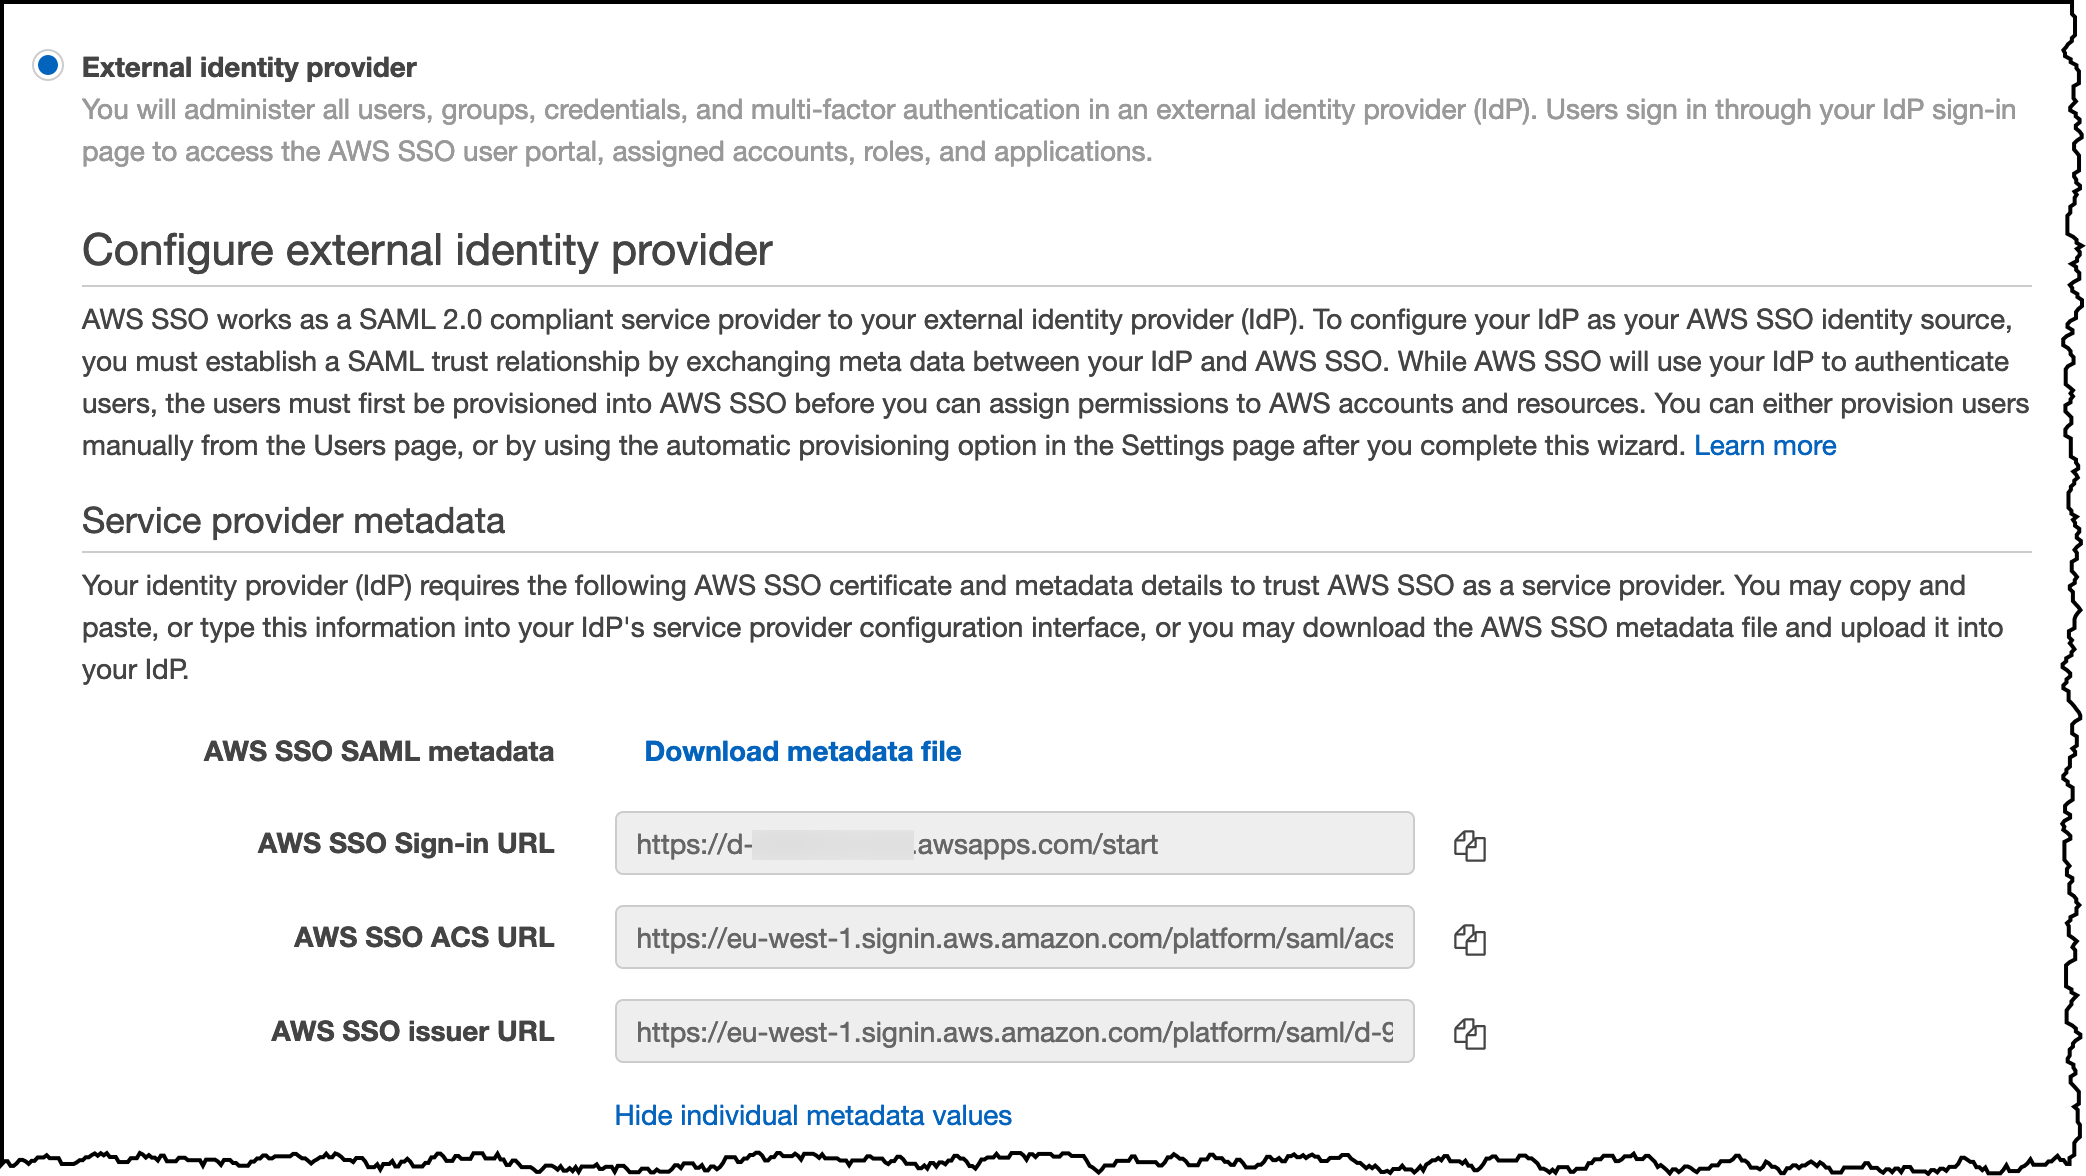 AWS SSO Save URLs